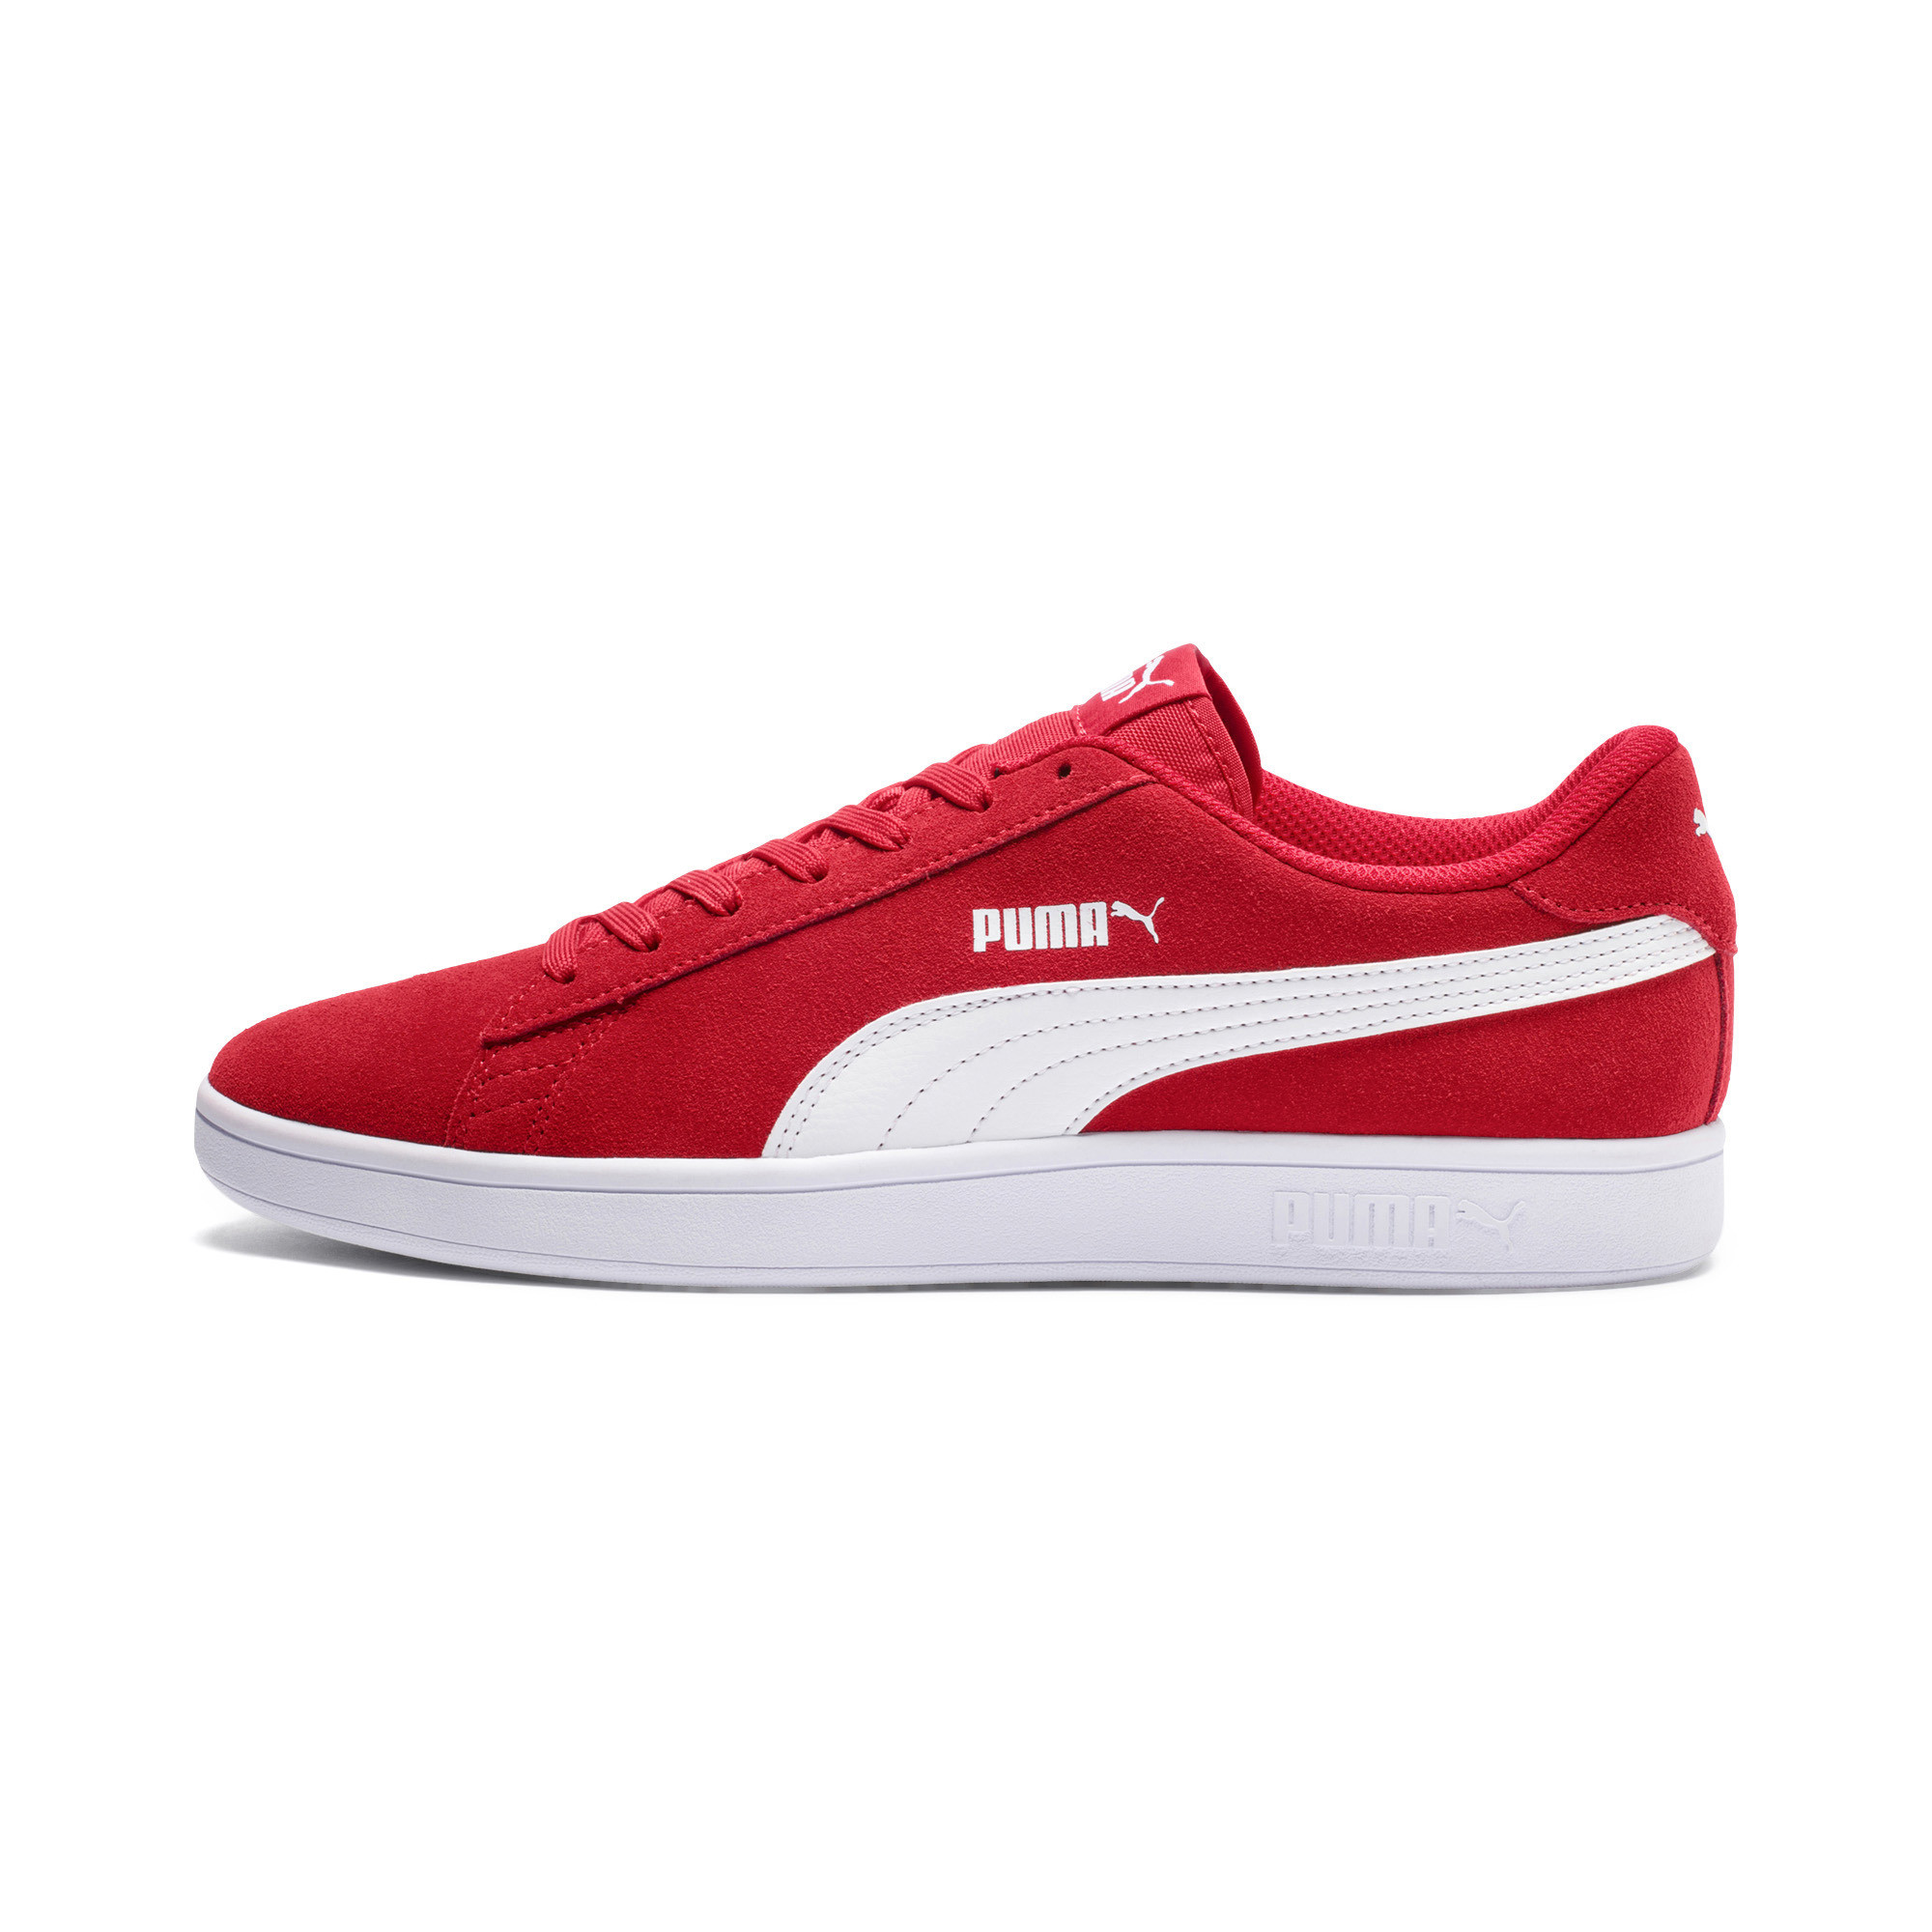 PUMA-PUMA-Smash-v2-Men-039-s-Sneakers-Men-Shoe-Basics thumbnail 31